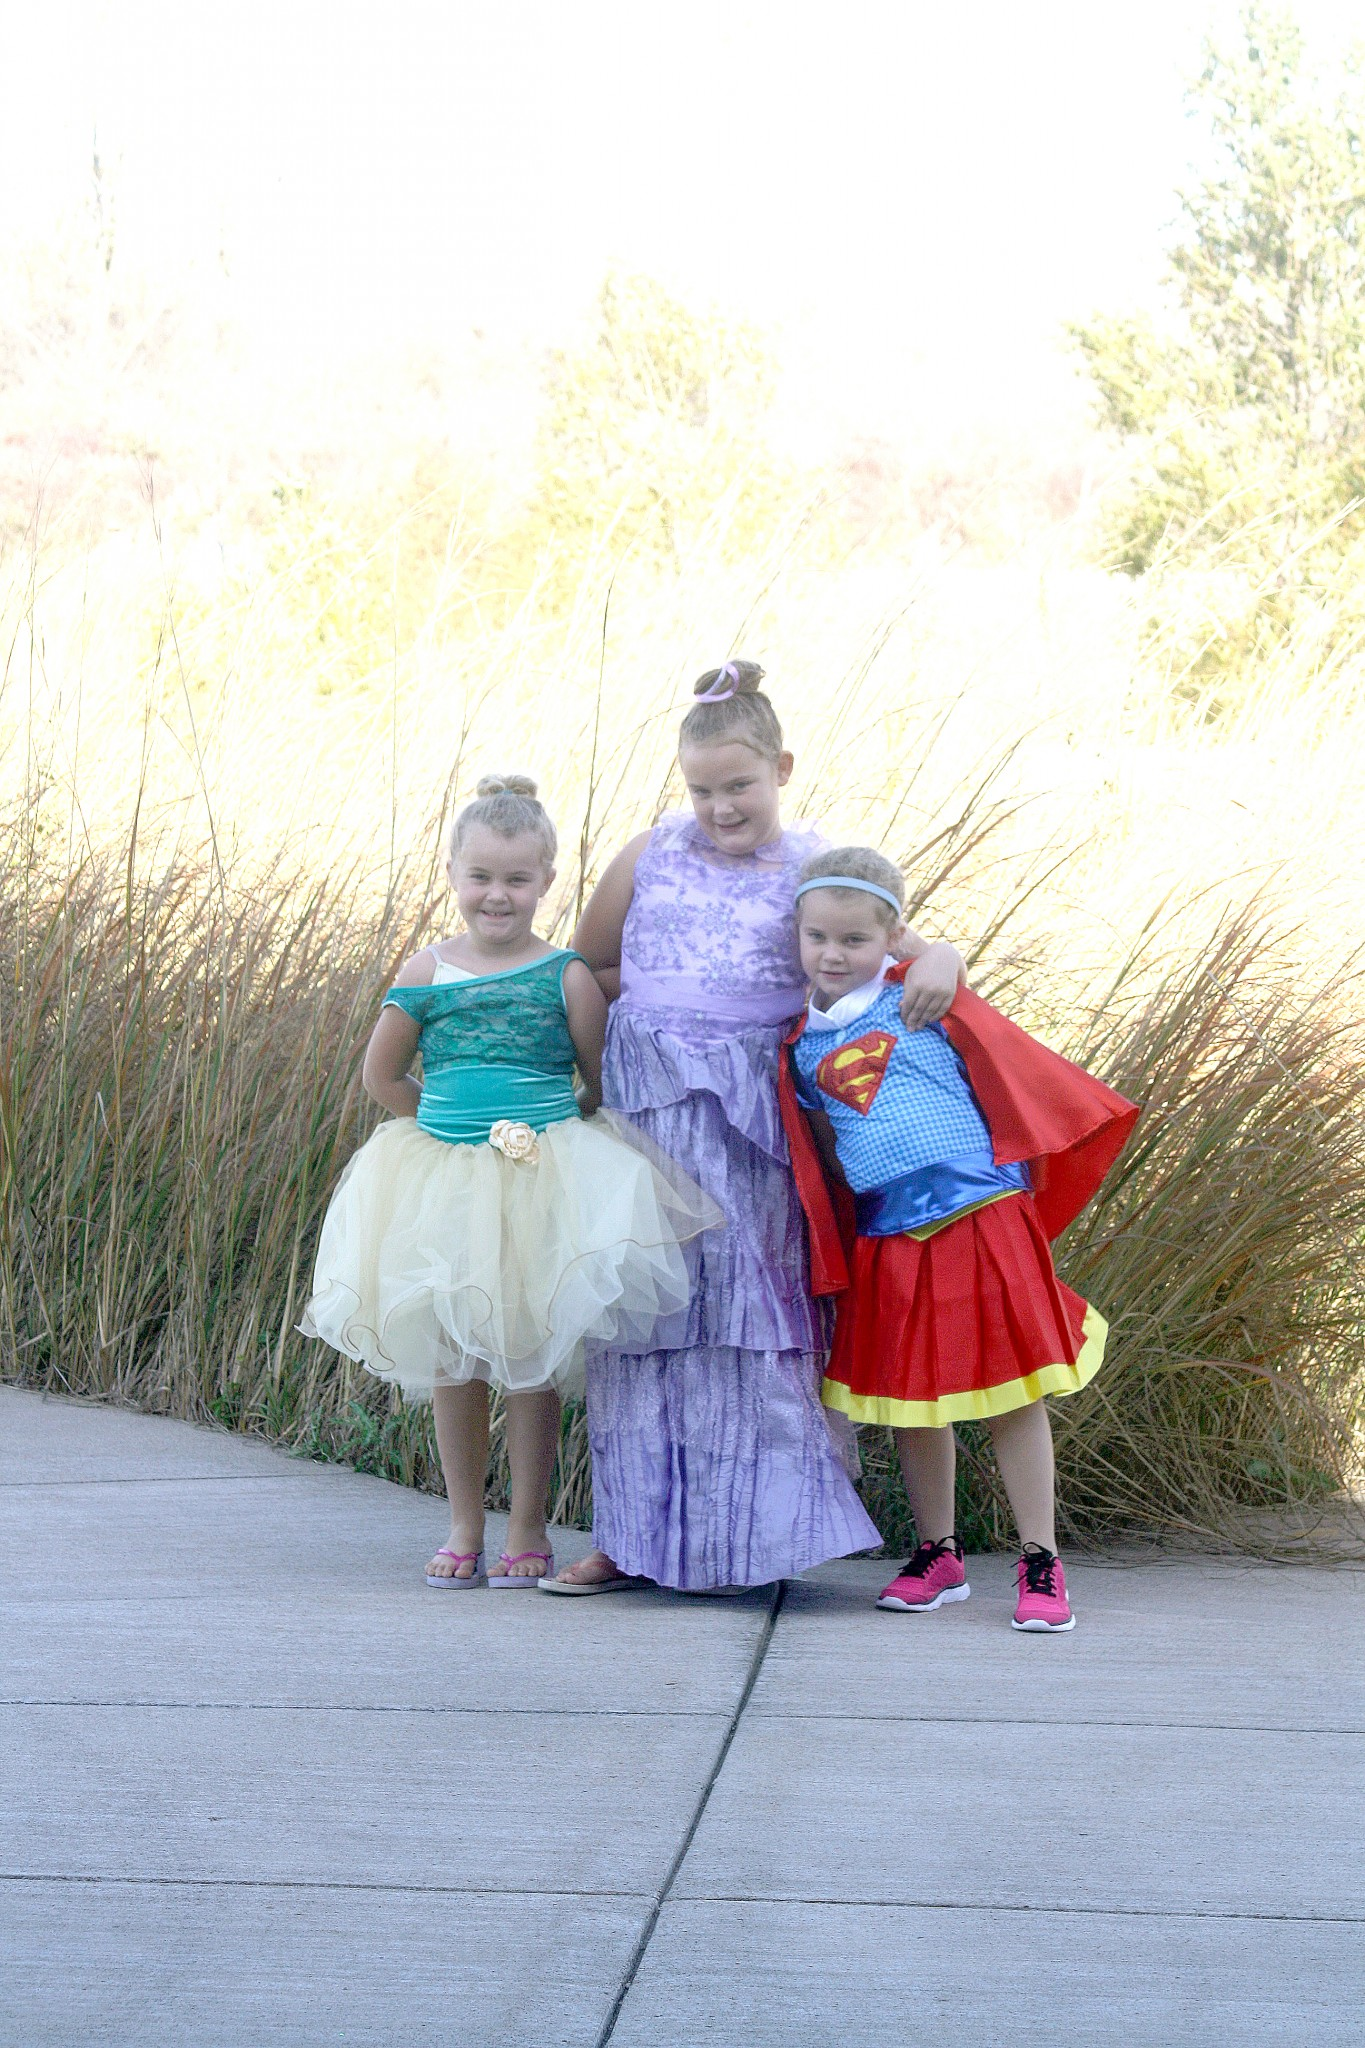 Enjoy spook-tacular fun at a Howl-o-Ween event Oct. 26 at the Ottawa National Wildlife Refuge, 14000 W. SR 2, Oak Harbor. (Submitted event)